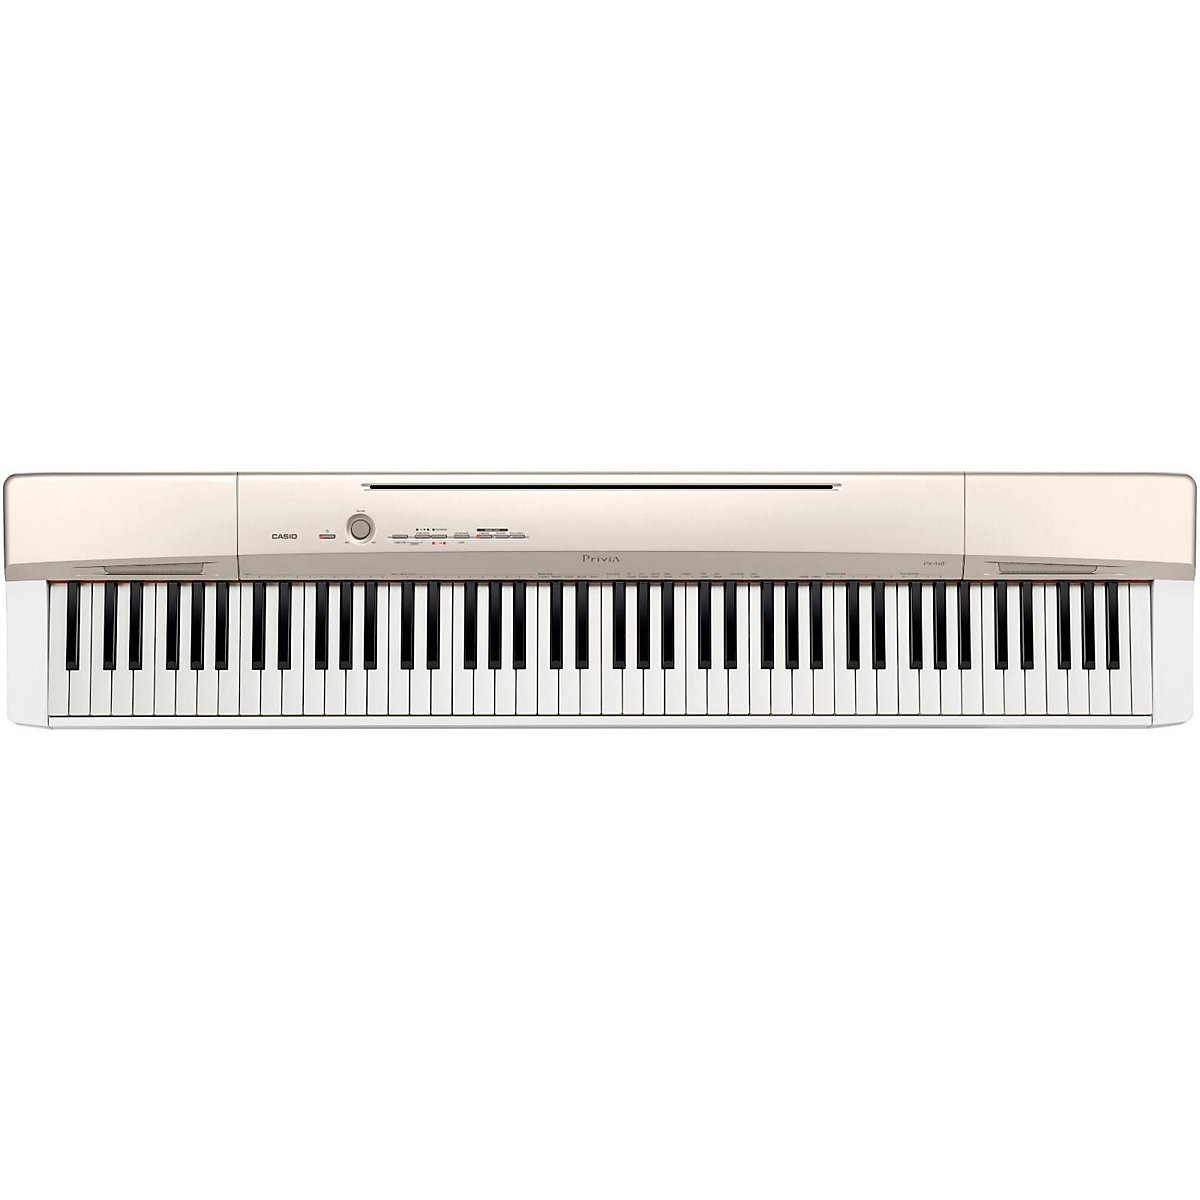 Casio Privia PX160GD 88-Key Full Size Digital Piano Bundle with CS-67 stand, SP33 Pedals, CB7 Bench, Headphones, and Instruction Book